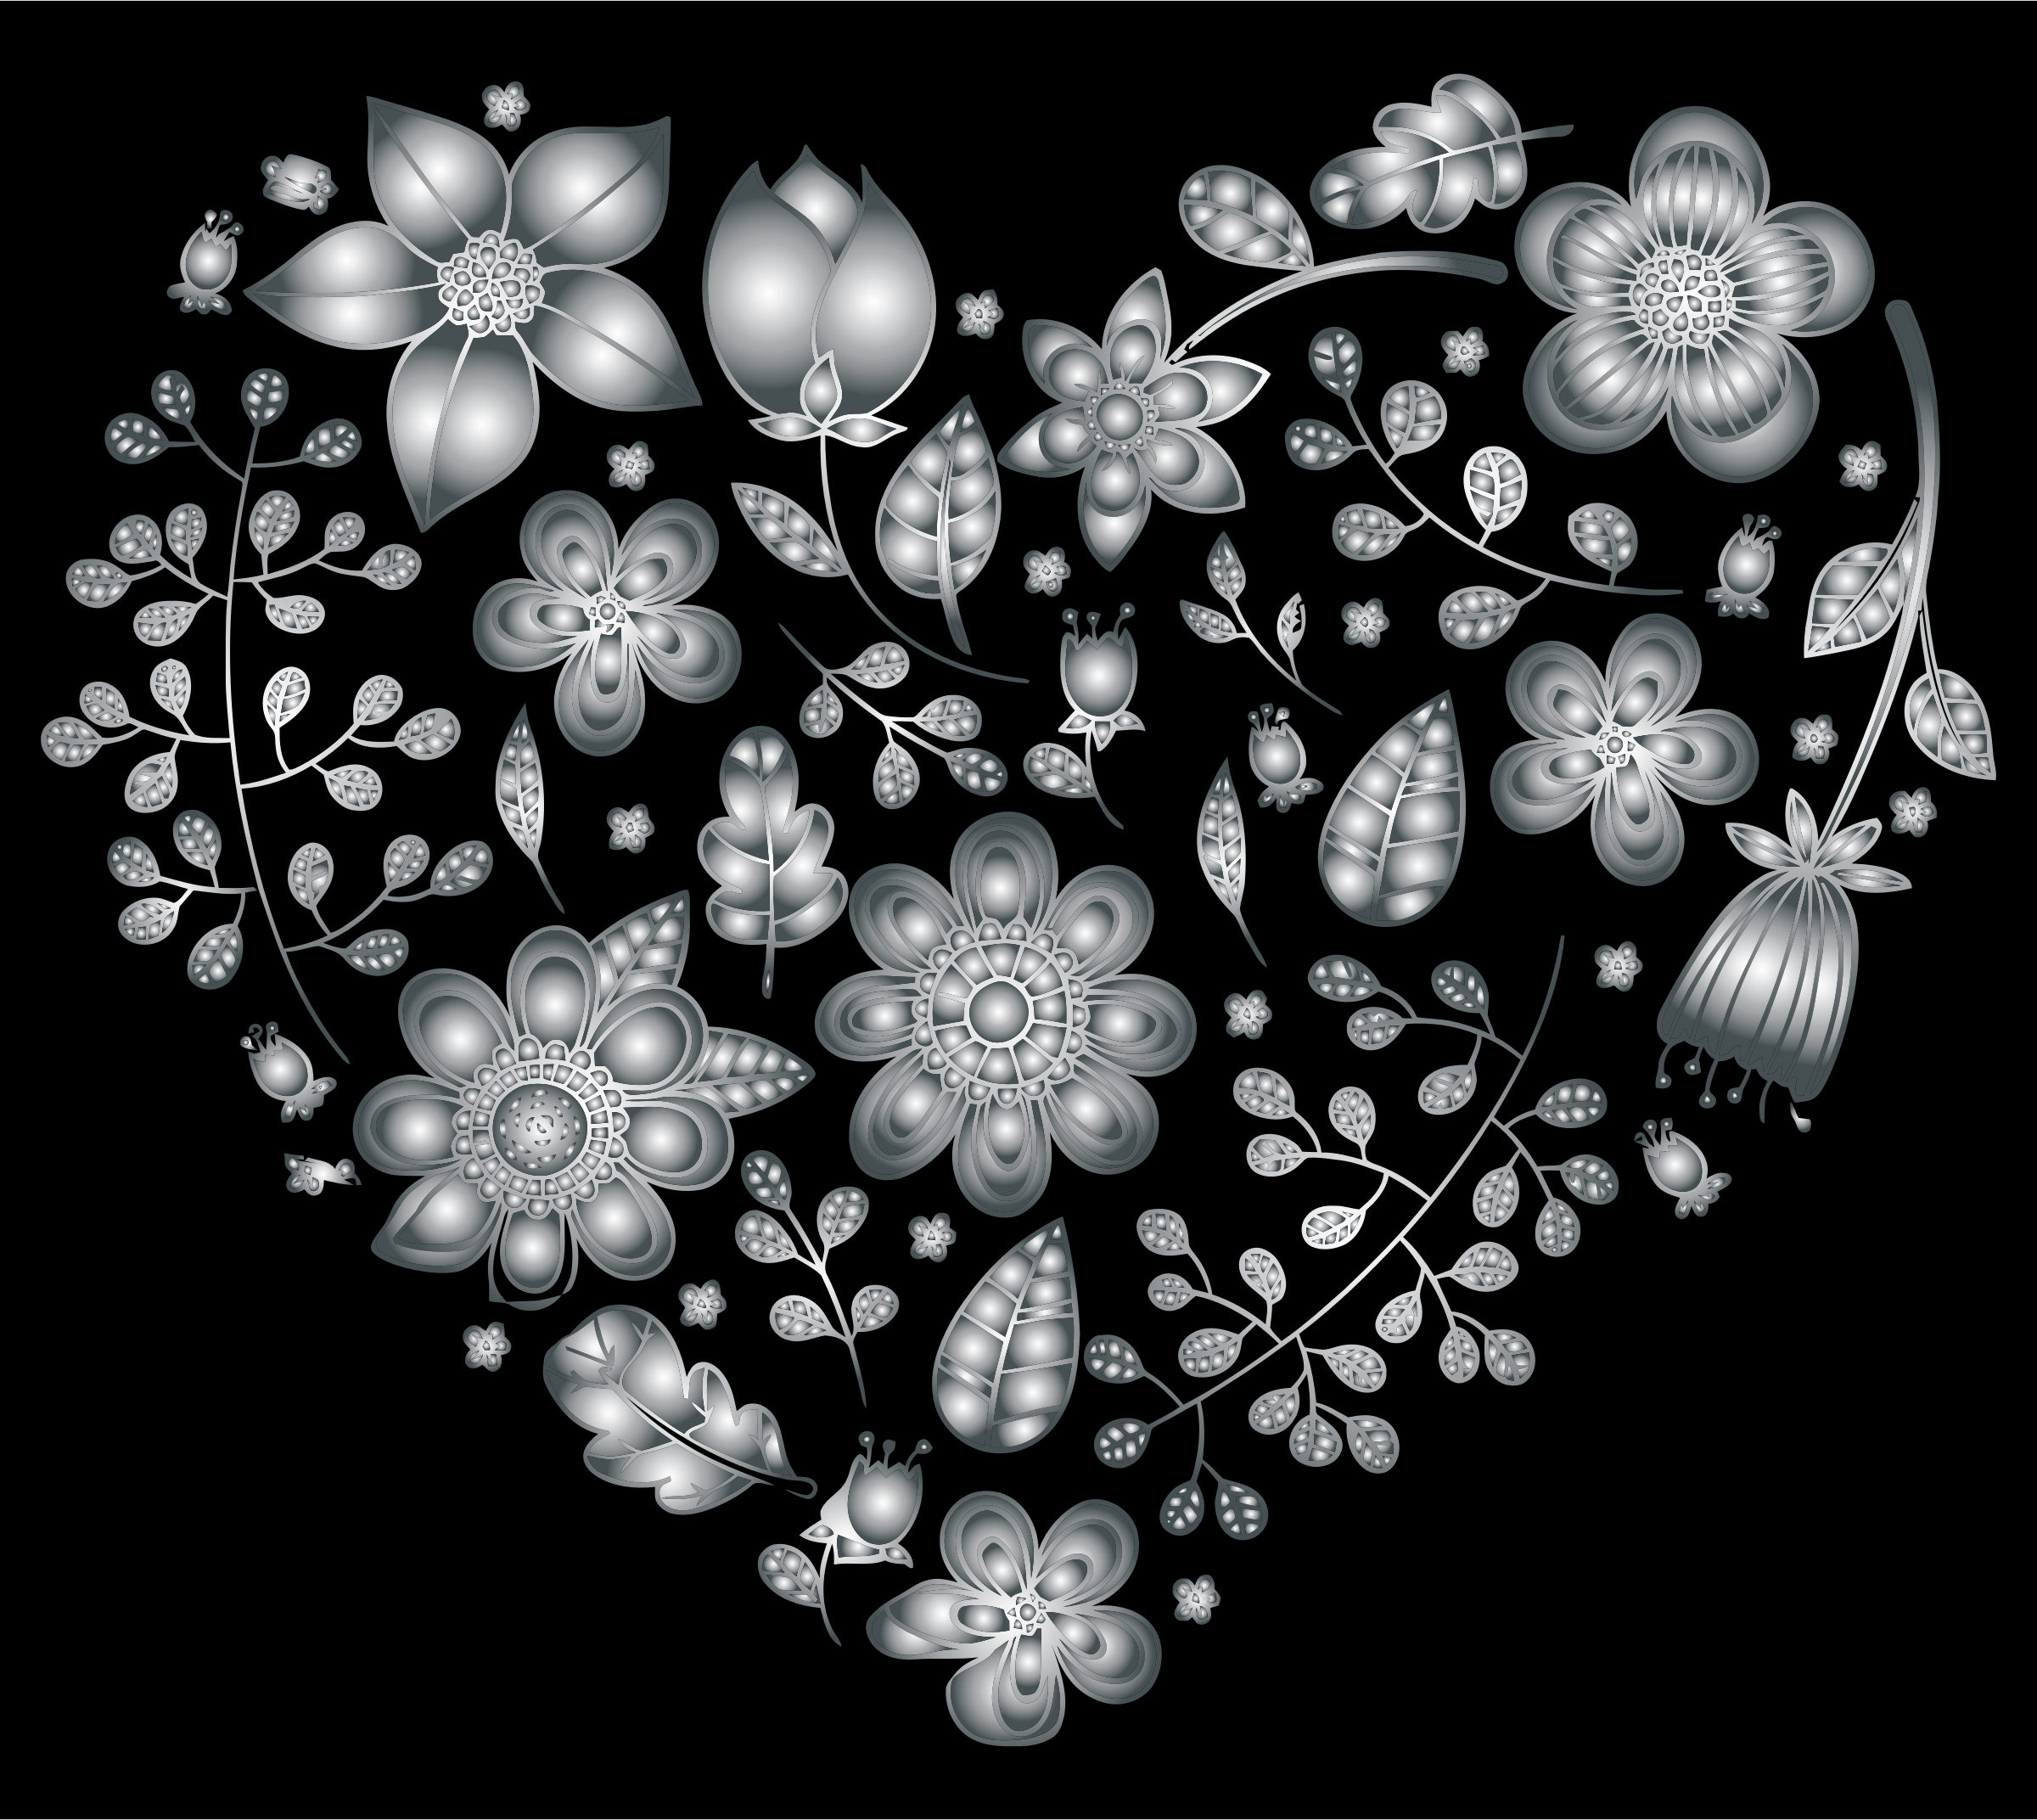 Grayscale Floral Heart 3 by GDJ